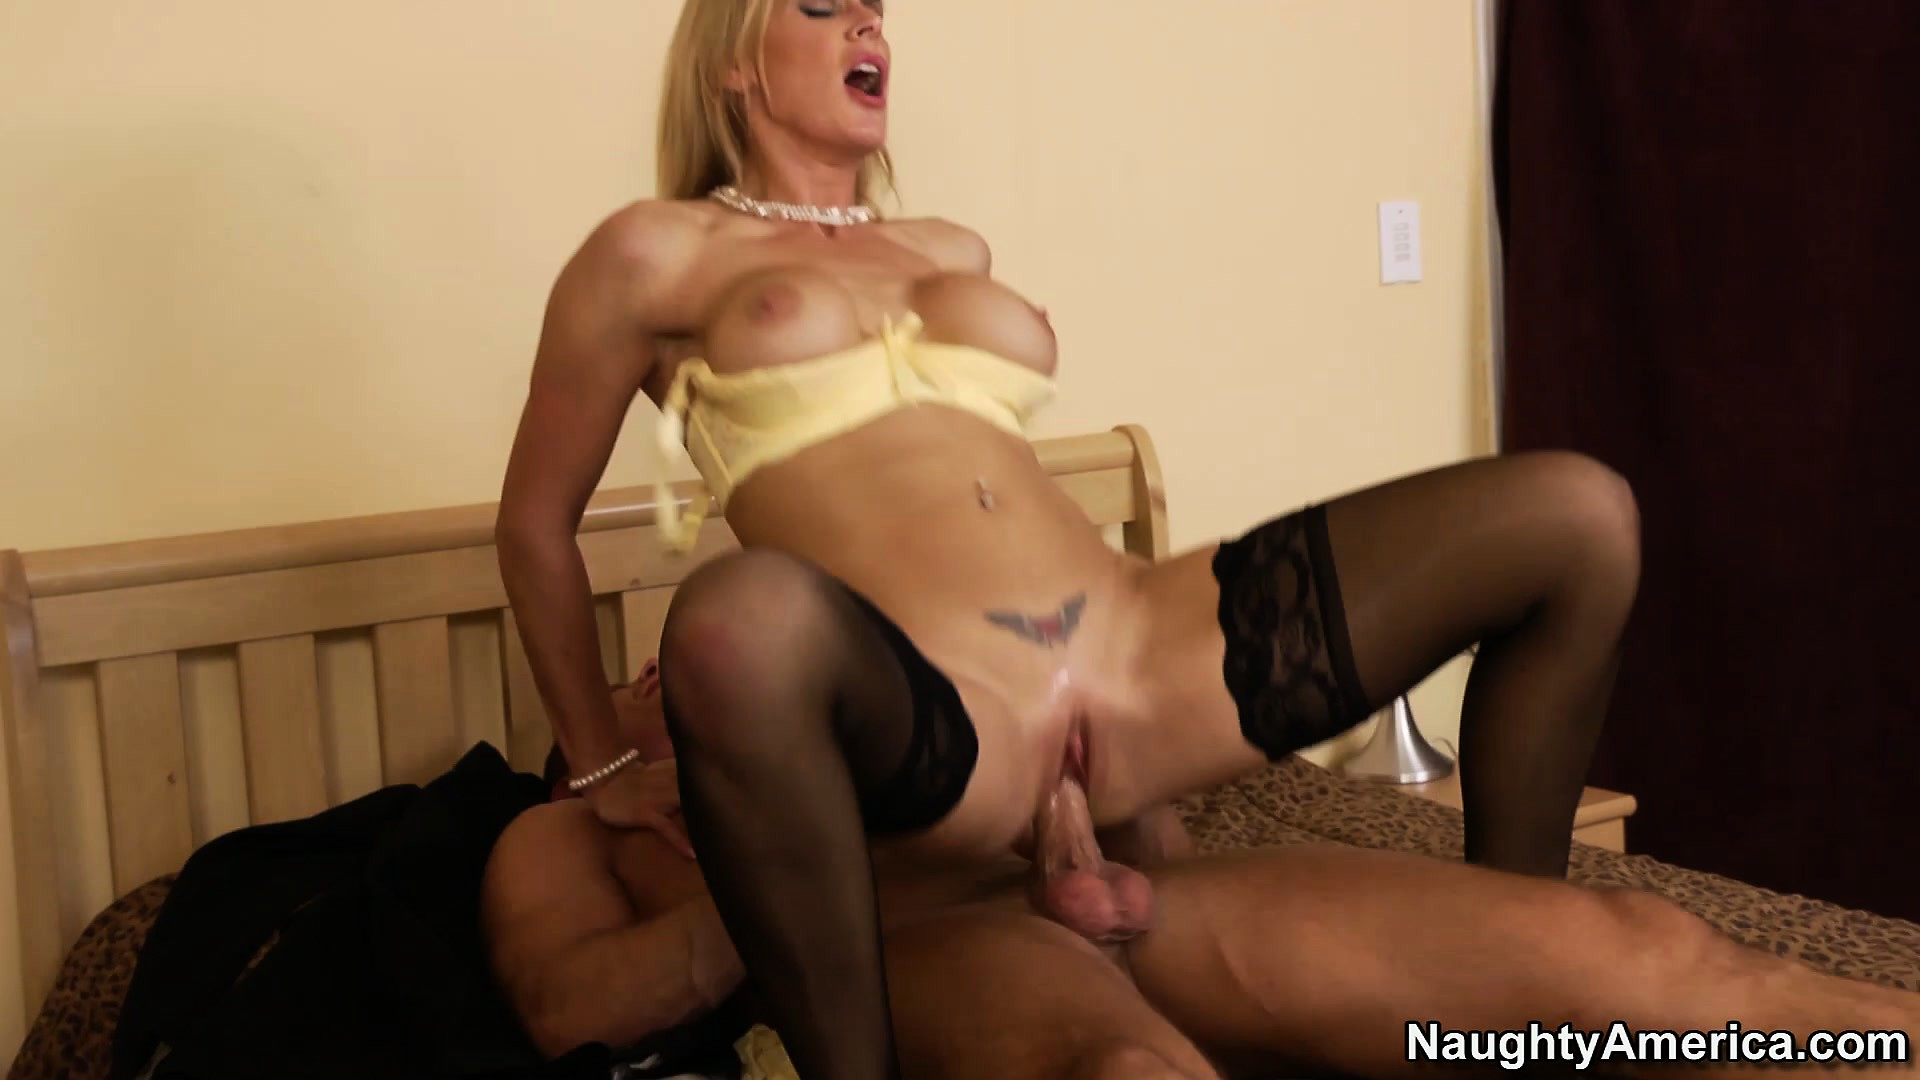 Porno Video of Tanya Tate Gets Her Milfy Pussy Filled Up While Riding A Cock